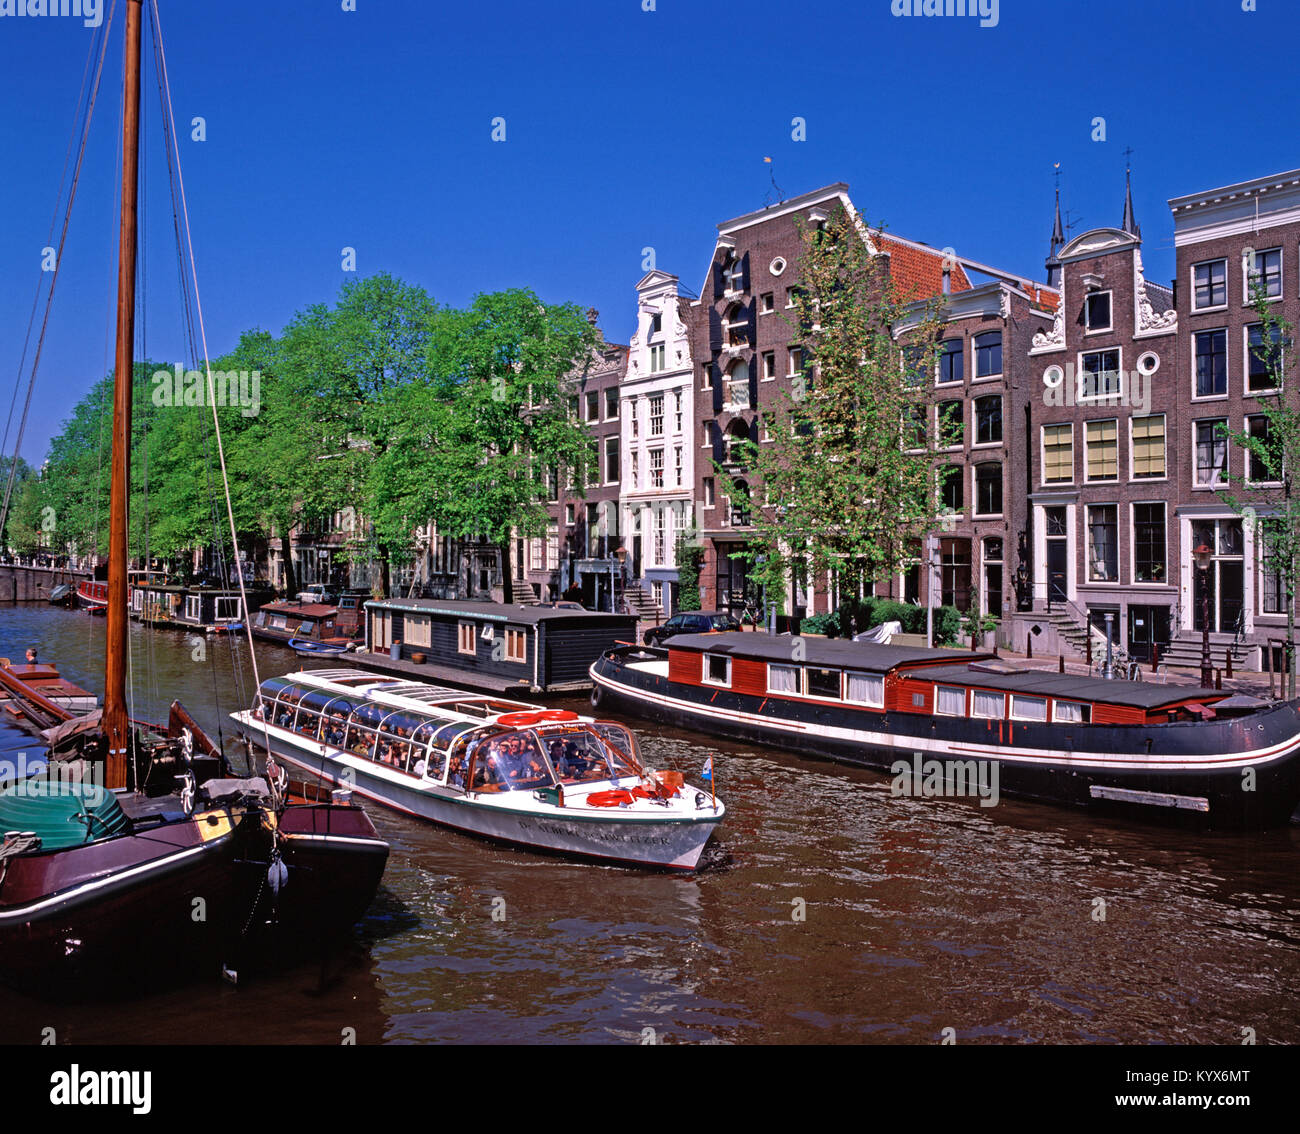 Pleasure/Tourist boat on Brouersgracht Canal, Amsterdam, Noord Holland, Netherlands - Stock Image